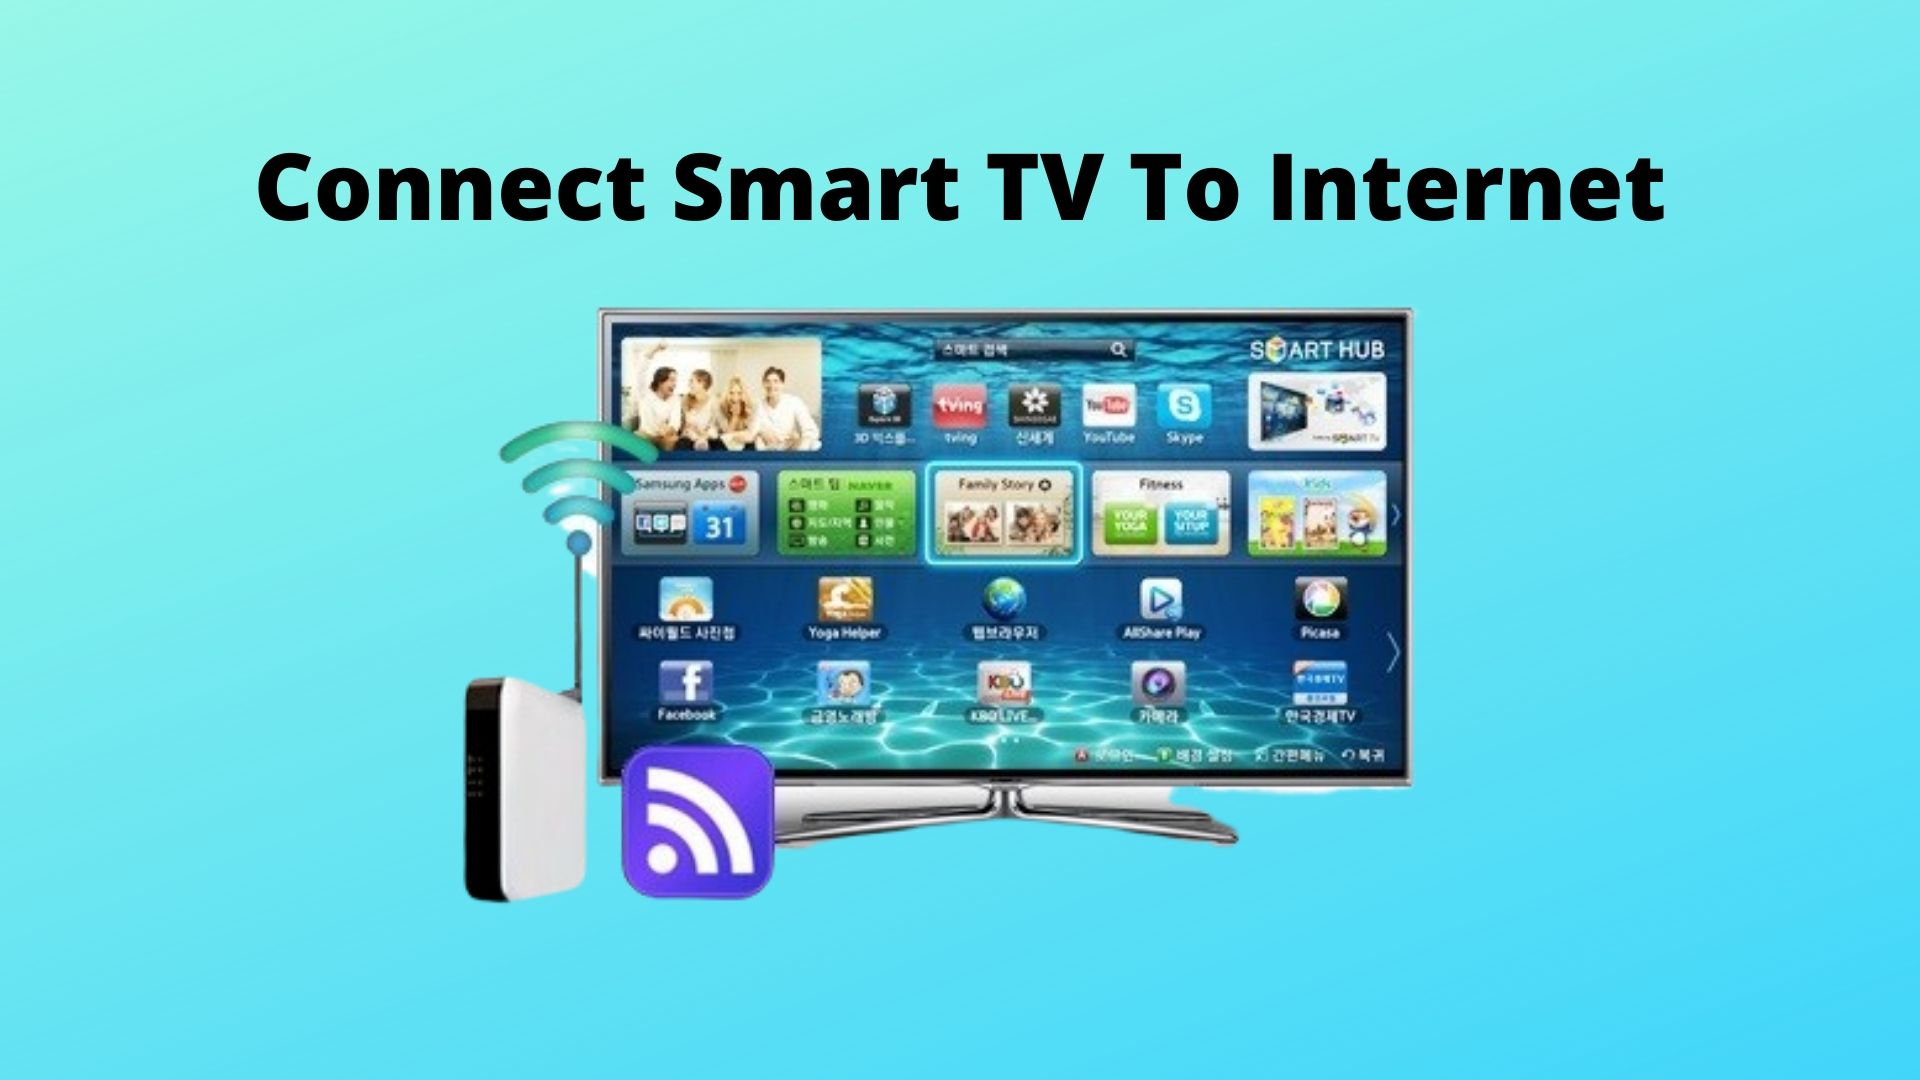 Connect Smart TV to Internet